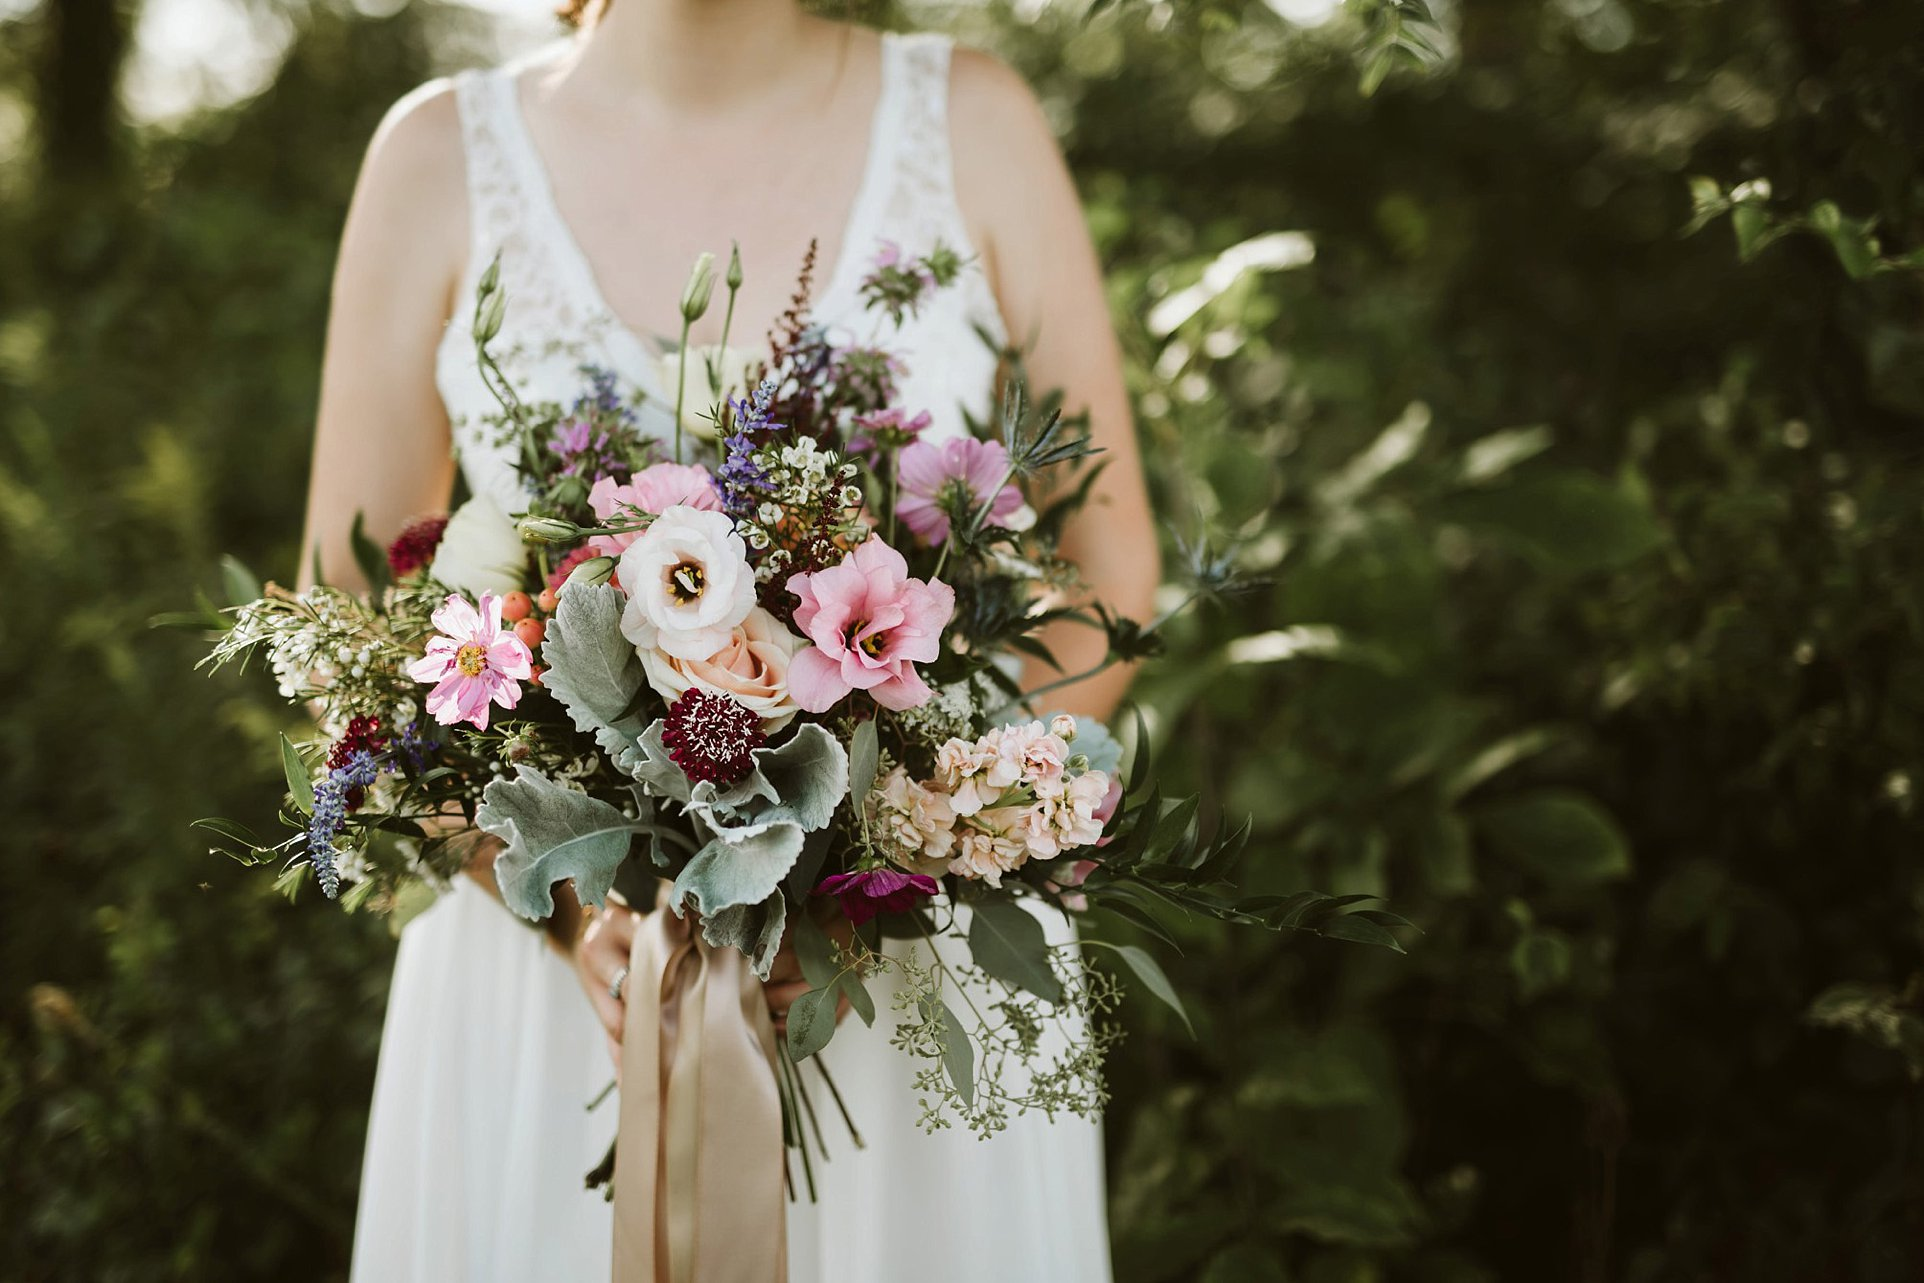 ohio-wedding-photographer-boho-garden-floral-wedding-026